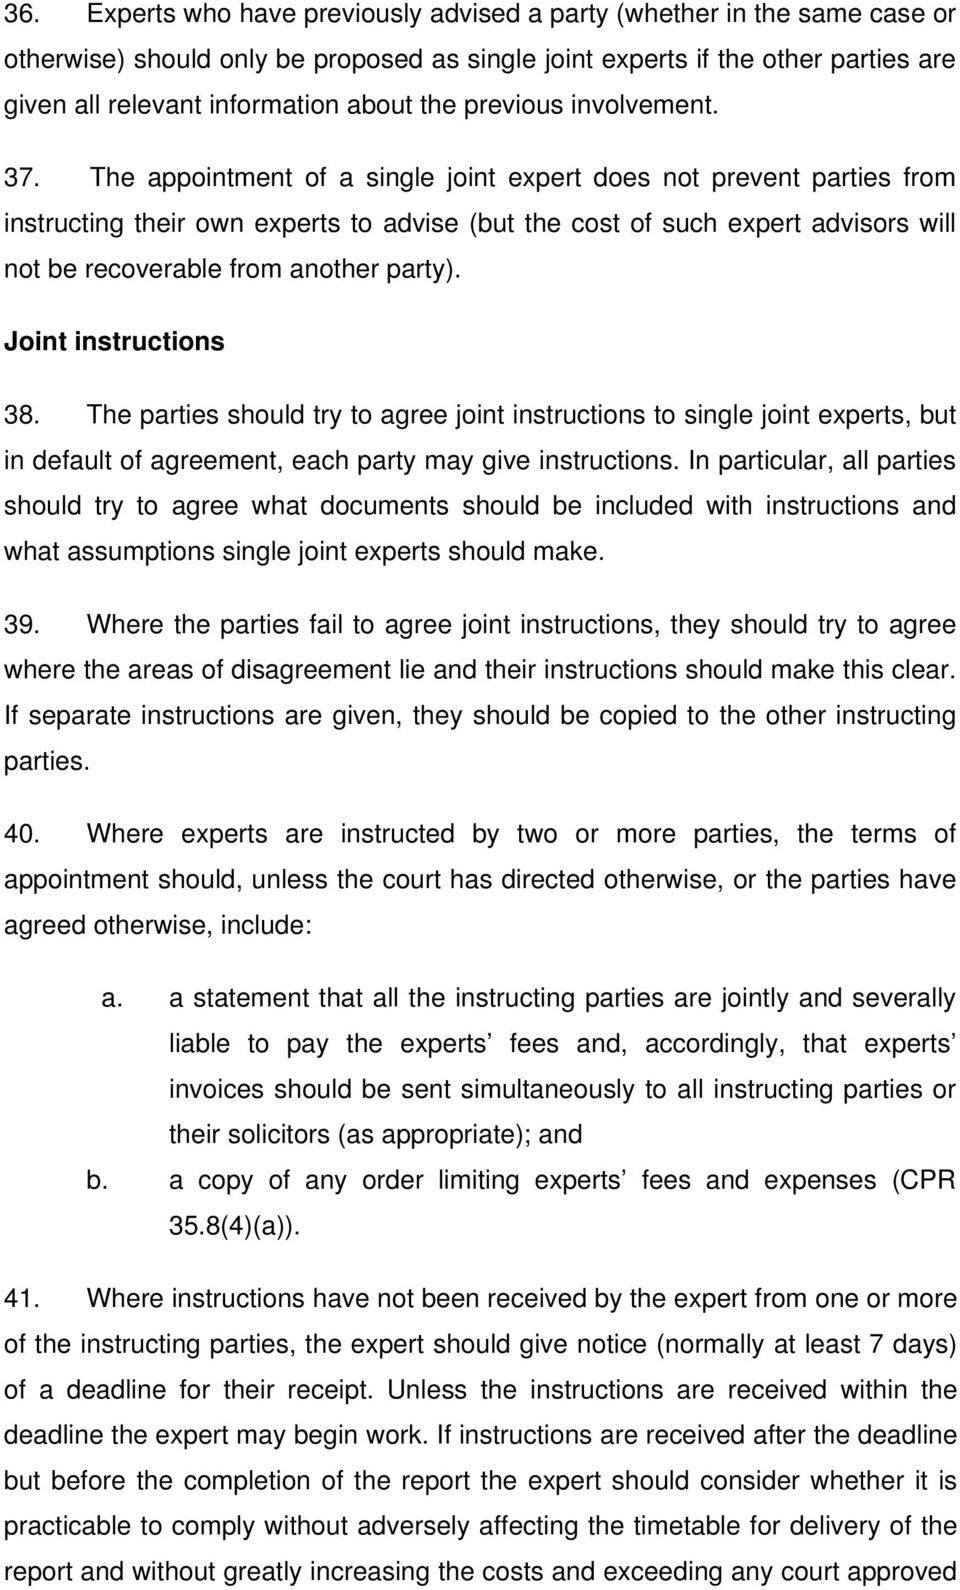 The appointment of a single joint expert does not prevent parties from instructing their own experts to advise (but the cost of such expert advisors will not be recoverable from another party).